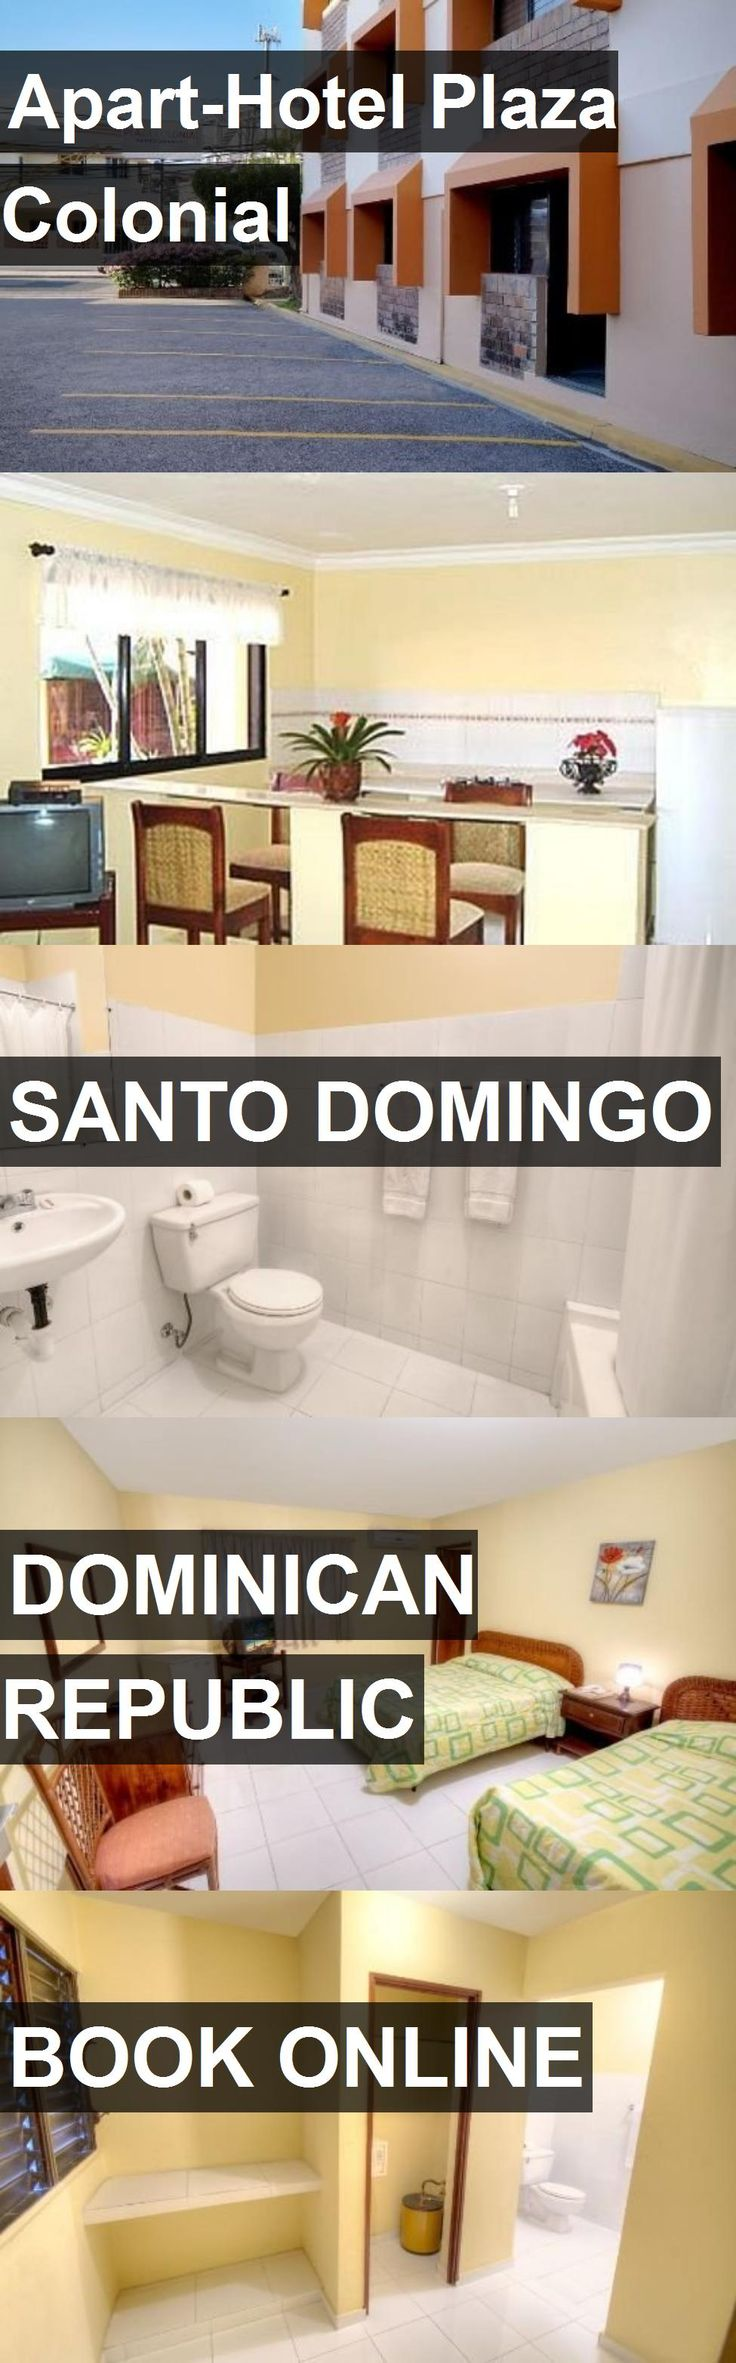 Apart-Hotel Plaza Colonial in Santo Domingo, Dominican Republic. For more information, photos, reviews and best prices please follow the link. #DominicanRepublic #SantoDomingo #travel #vacation #hotel